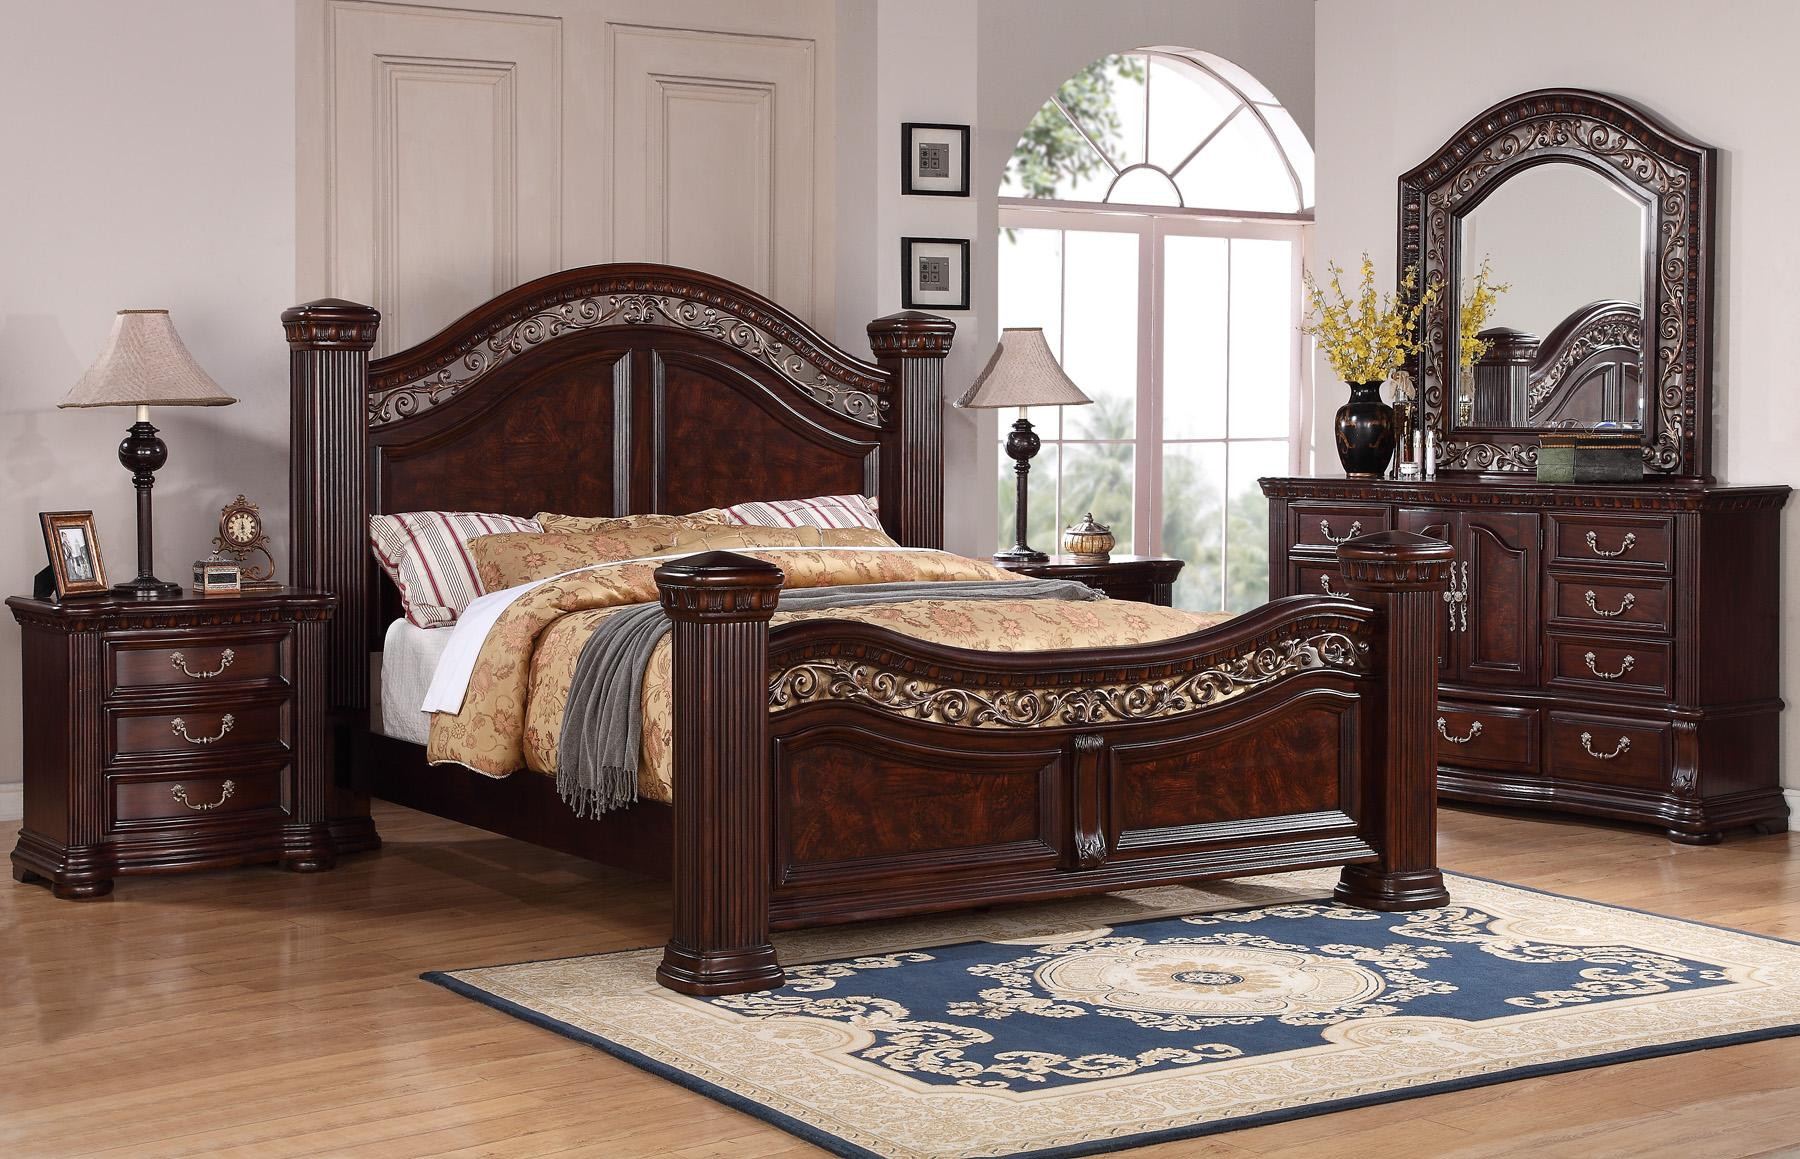 Flexsteel Wynwood Collection Alicante King Mansion Bed With Detailed Carvings Furniturewebsite Headboard Footboard